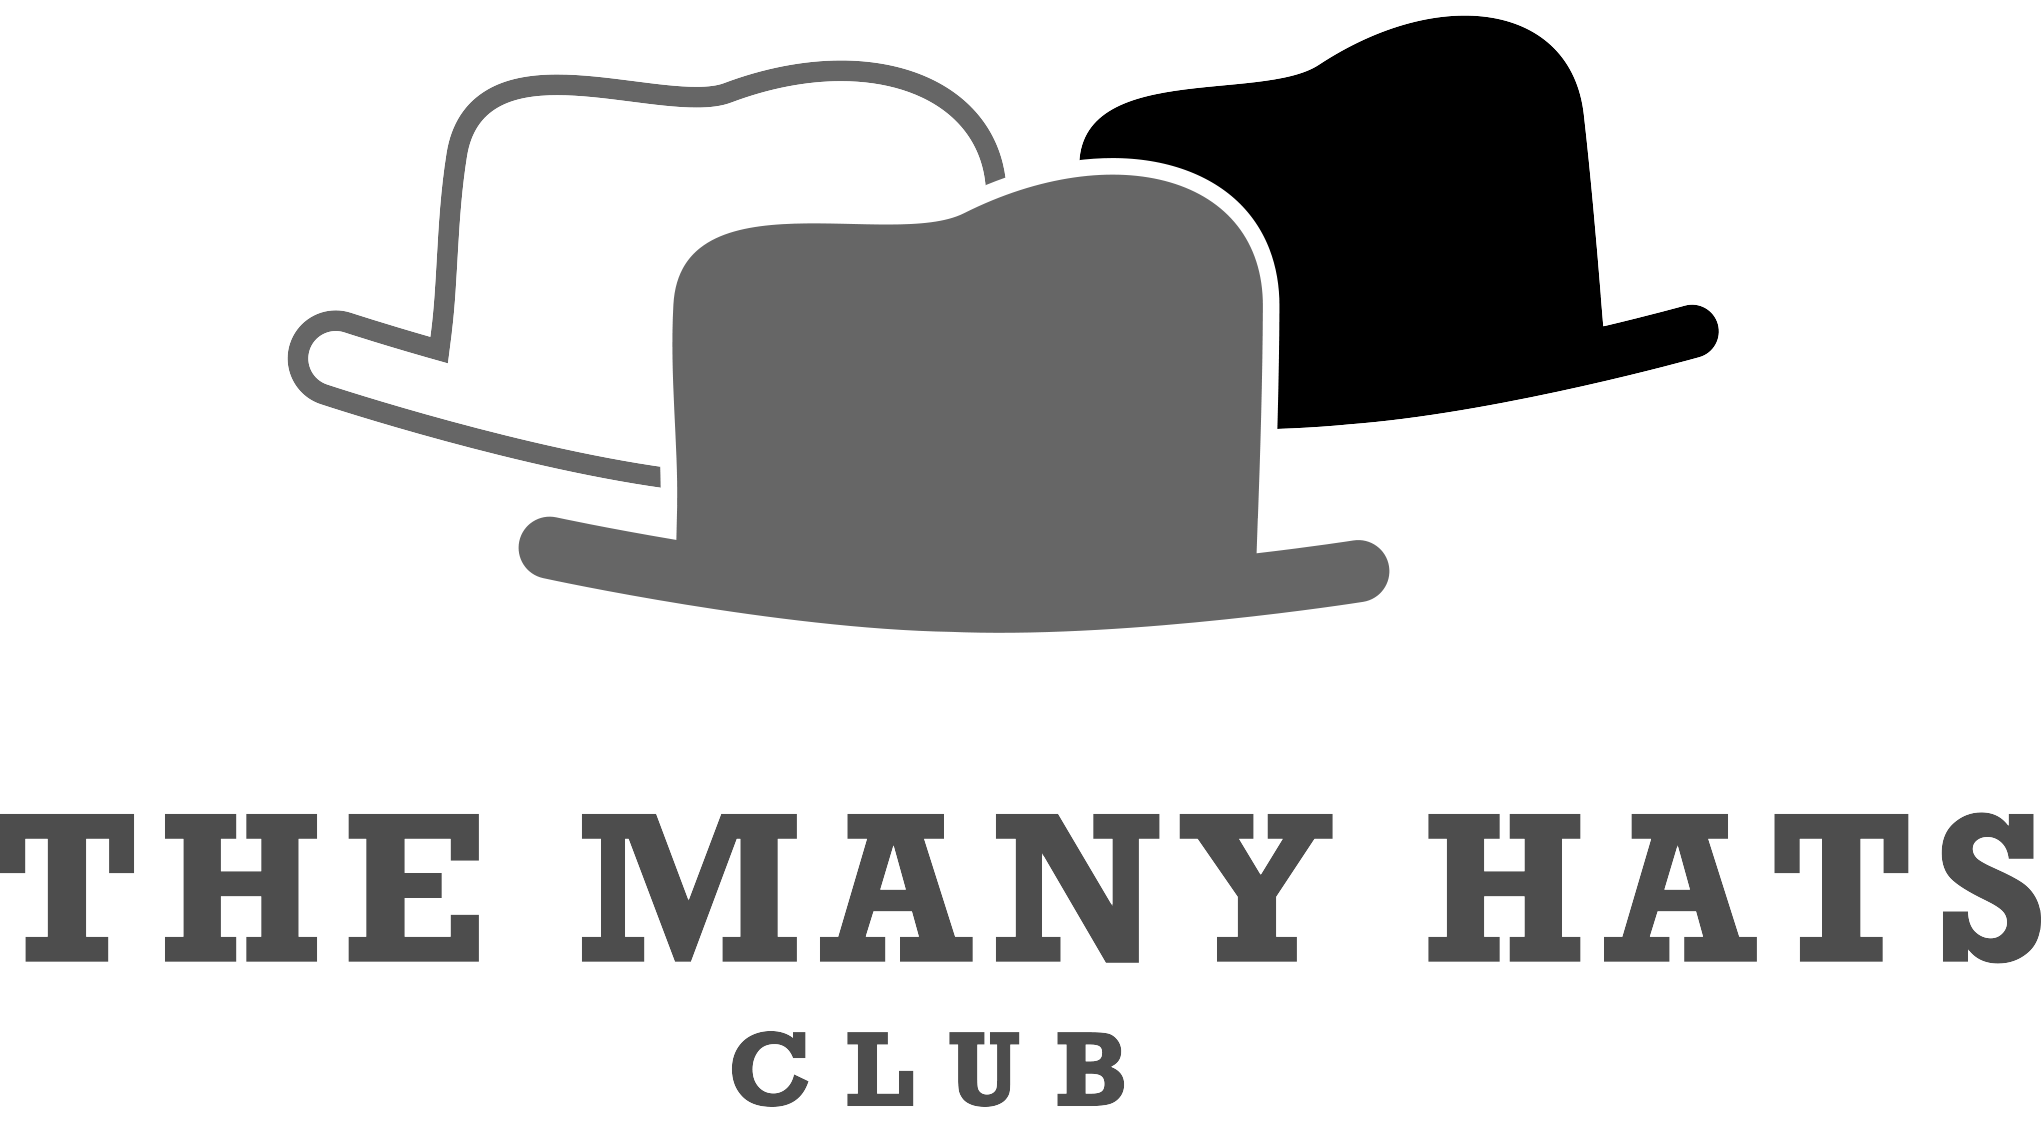 The Many Hats Club